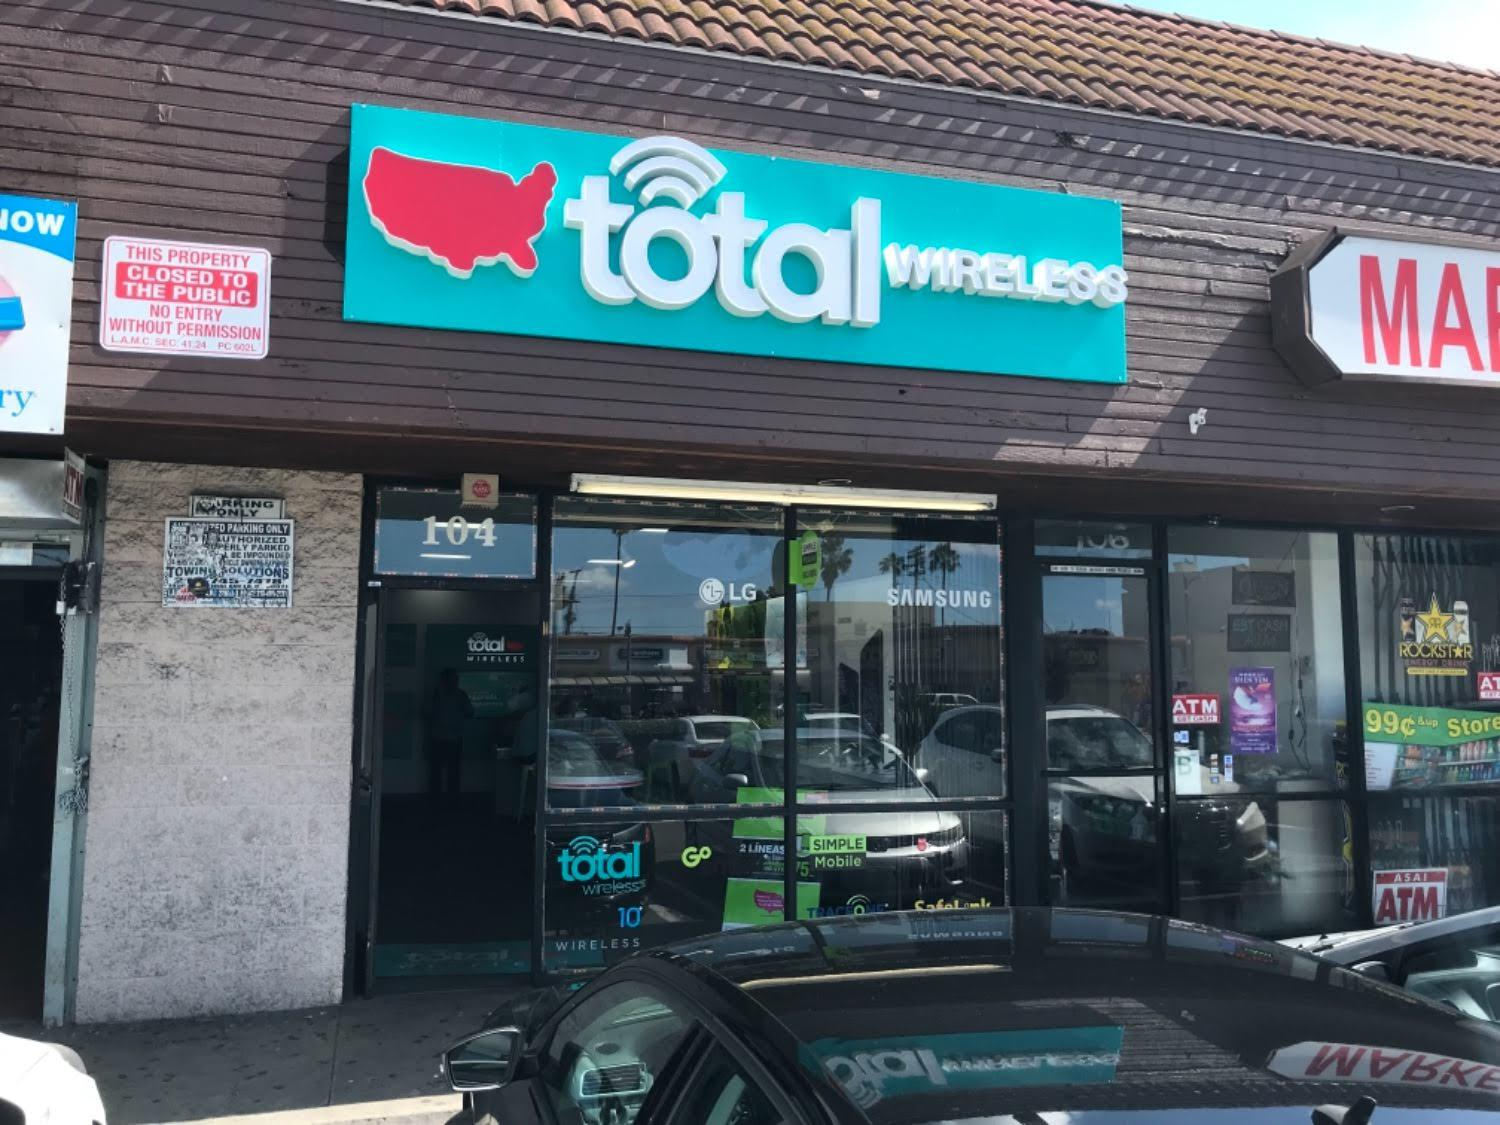 Total Wireless Store front image in Los Angeles,  CA